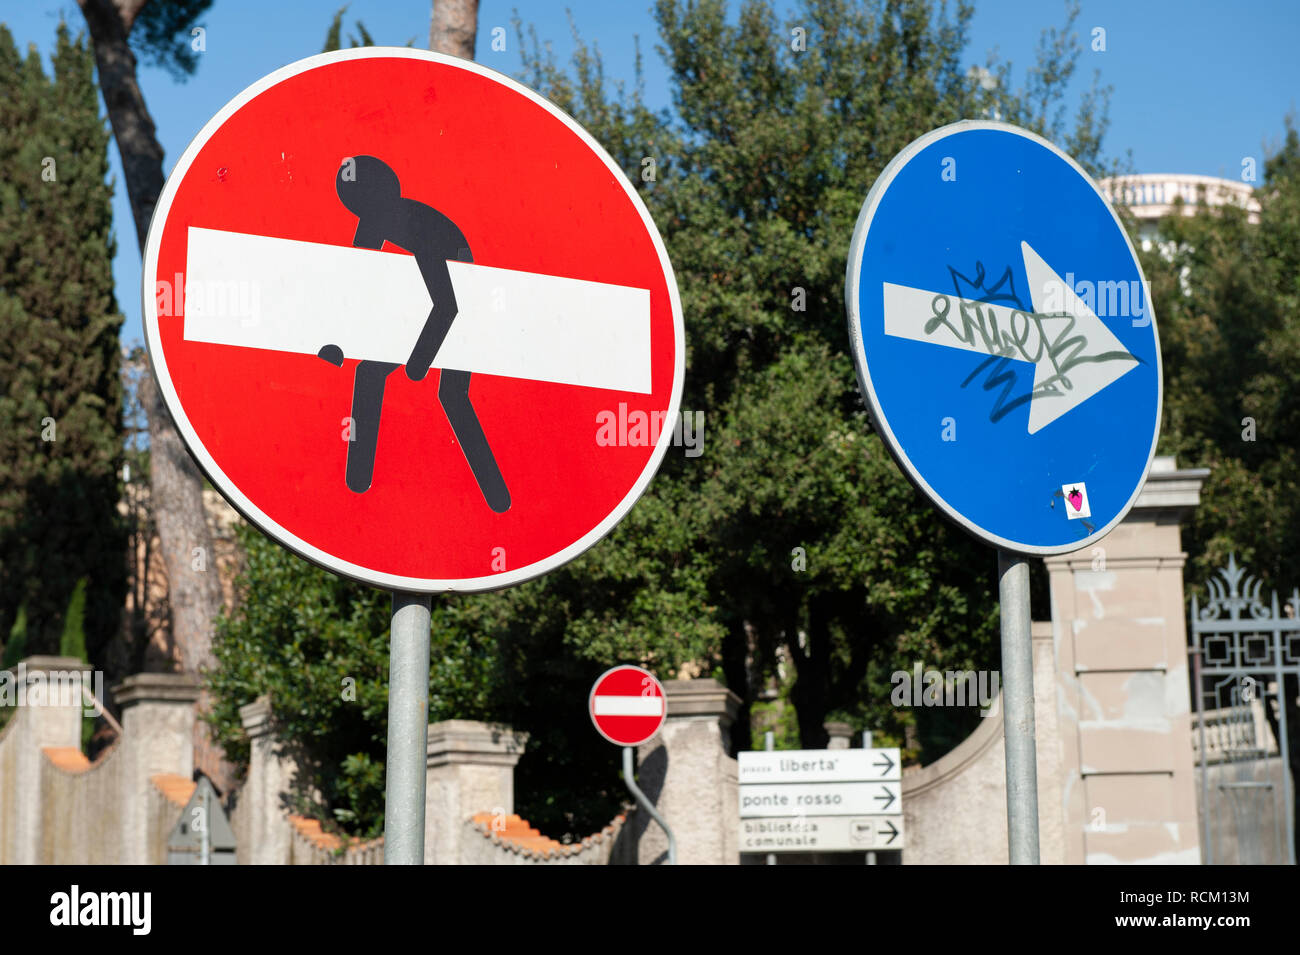 No Entry road sign defaced by street artist, Florence, Italy - Stock Image